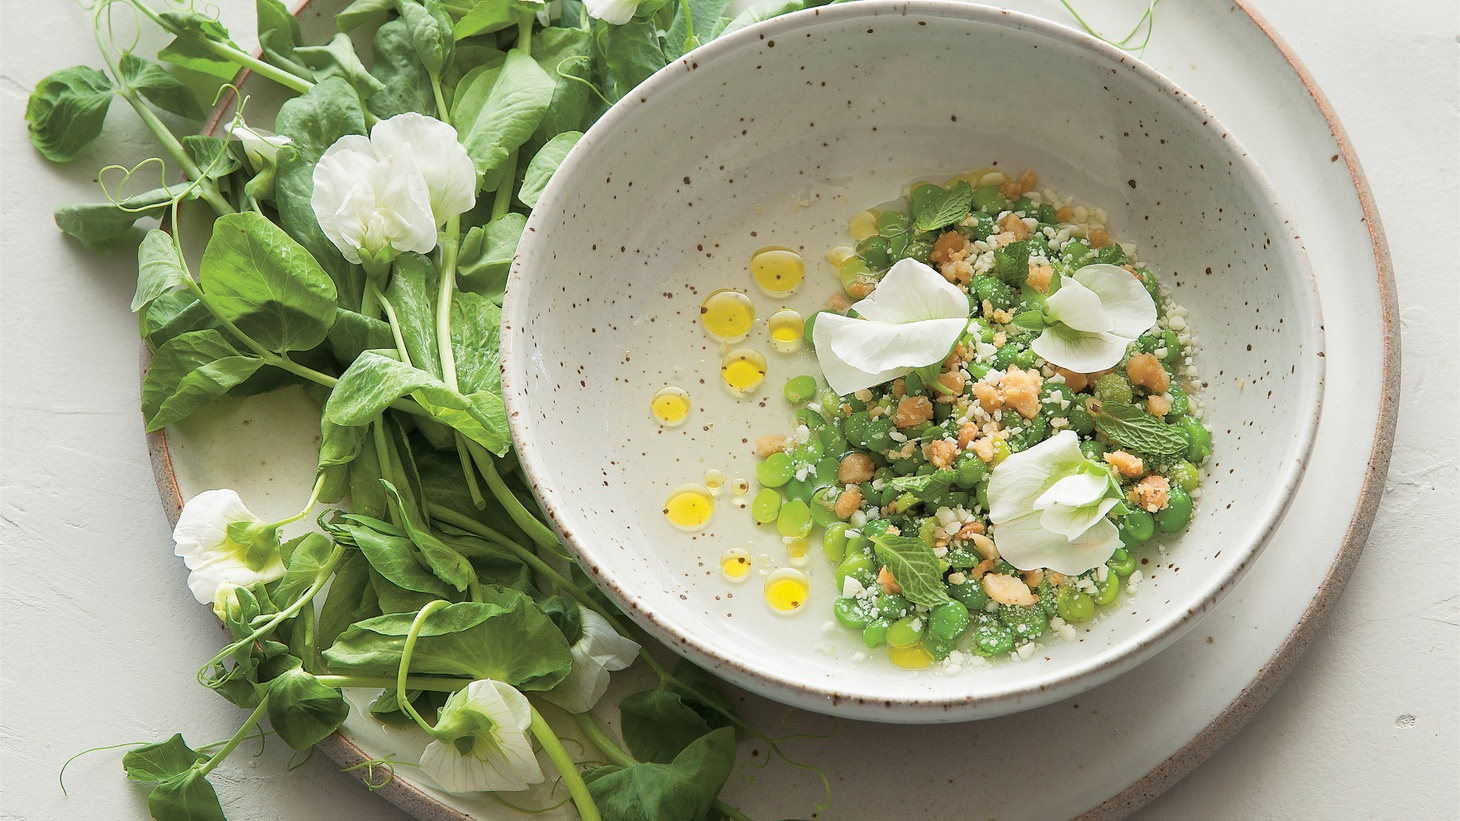 """Chef Jeremy Fox turns vegetables into true expressions of seasonal flavors at Rustic Canyon, Julia Sherman documents artists making salads in """"Salad for President,"""" and Deborah Madison shares meatless meal tips. Then Laura Avery shops for spring veggies at the market while we get a peek at Stacy Michelson's design for KCRW's """"Good Food"""" tote bag. Plus: Jonathan Gold digs into the Redneck Platter at Manuela."""